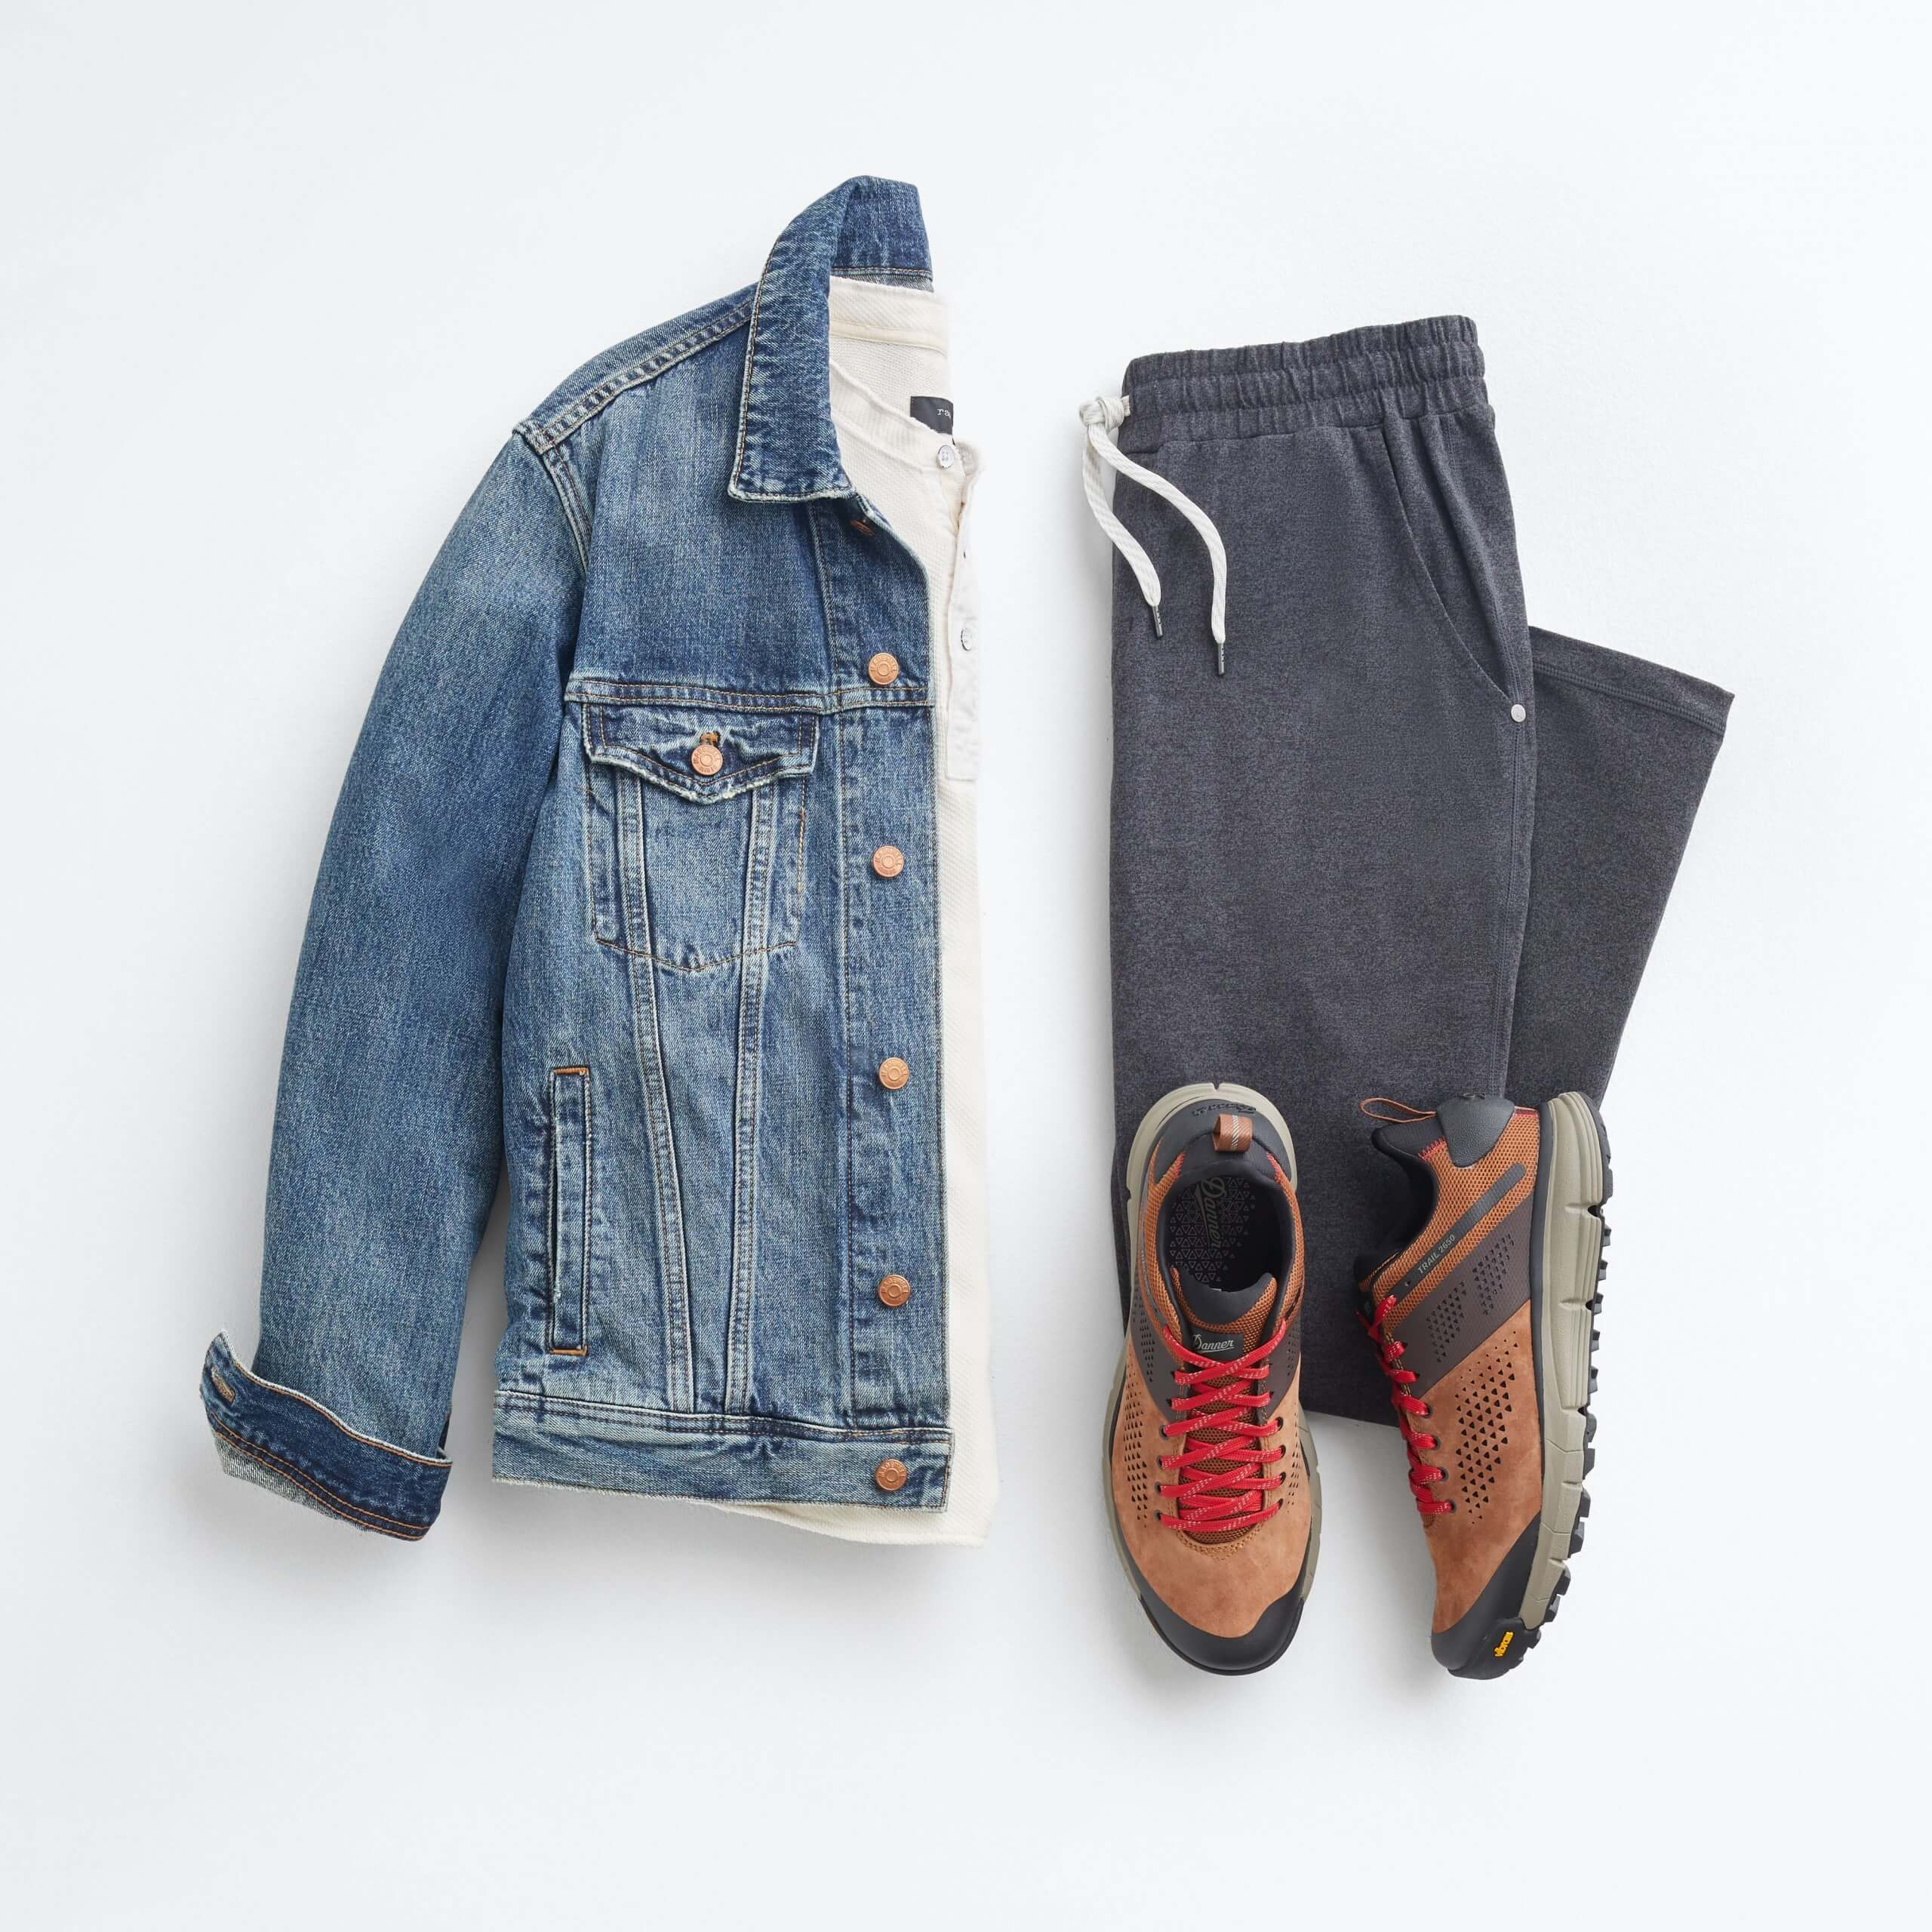 Stitch Fix Men's outfit laydown featuring blue jean jacket over white henley, grey joggers and brown suede sneakers.